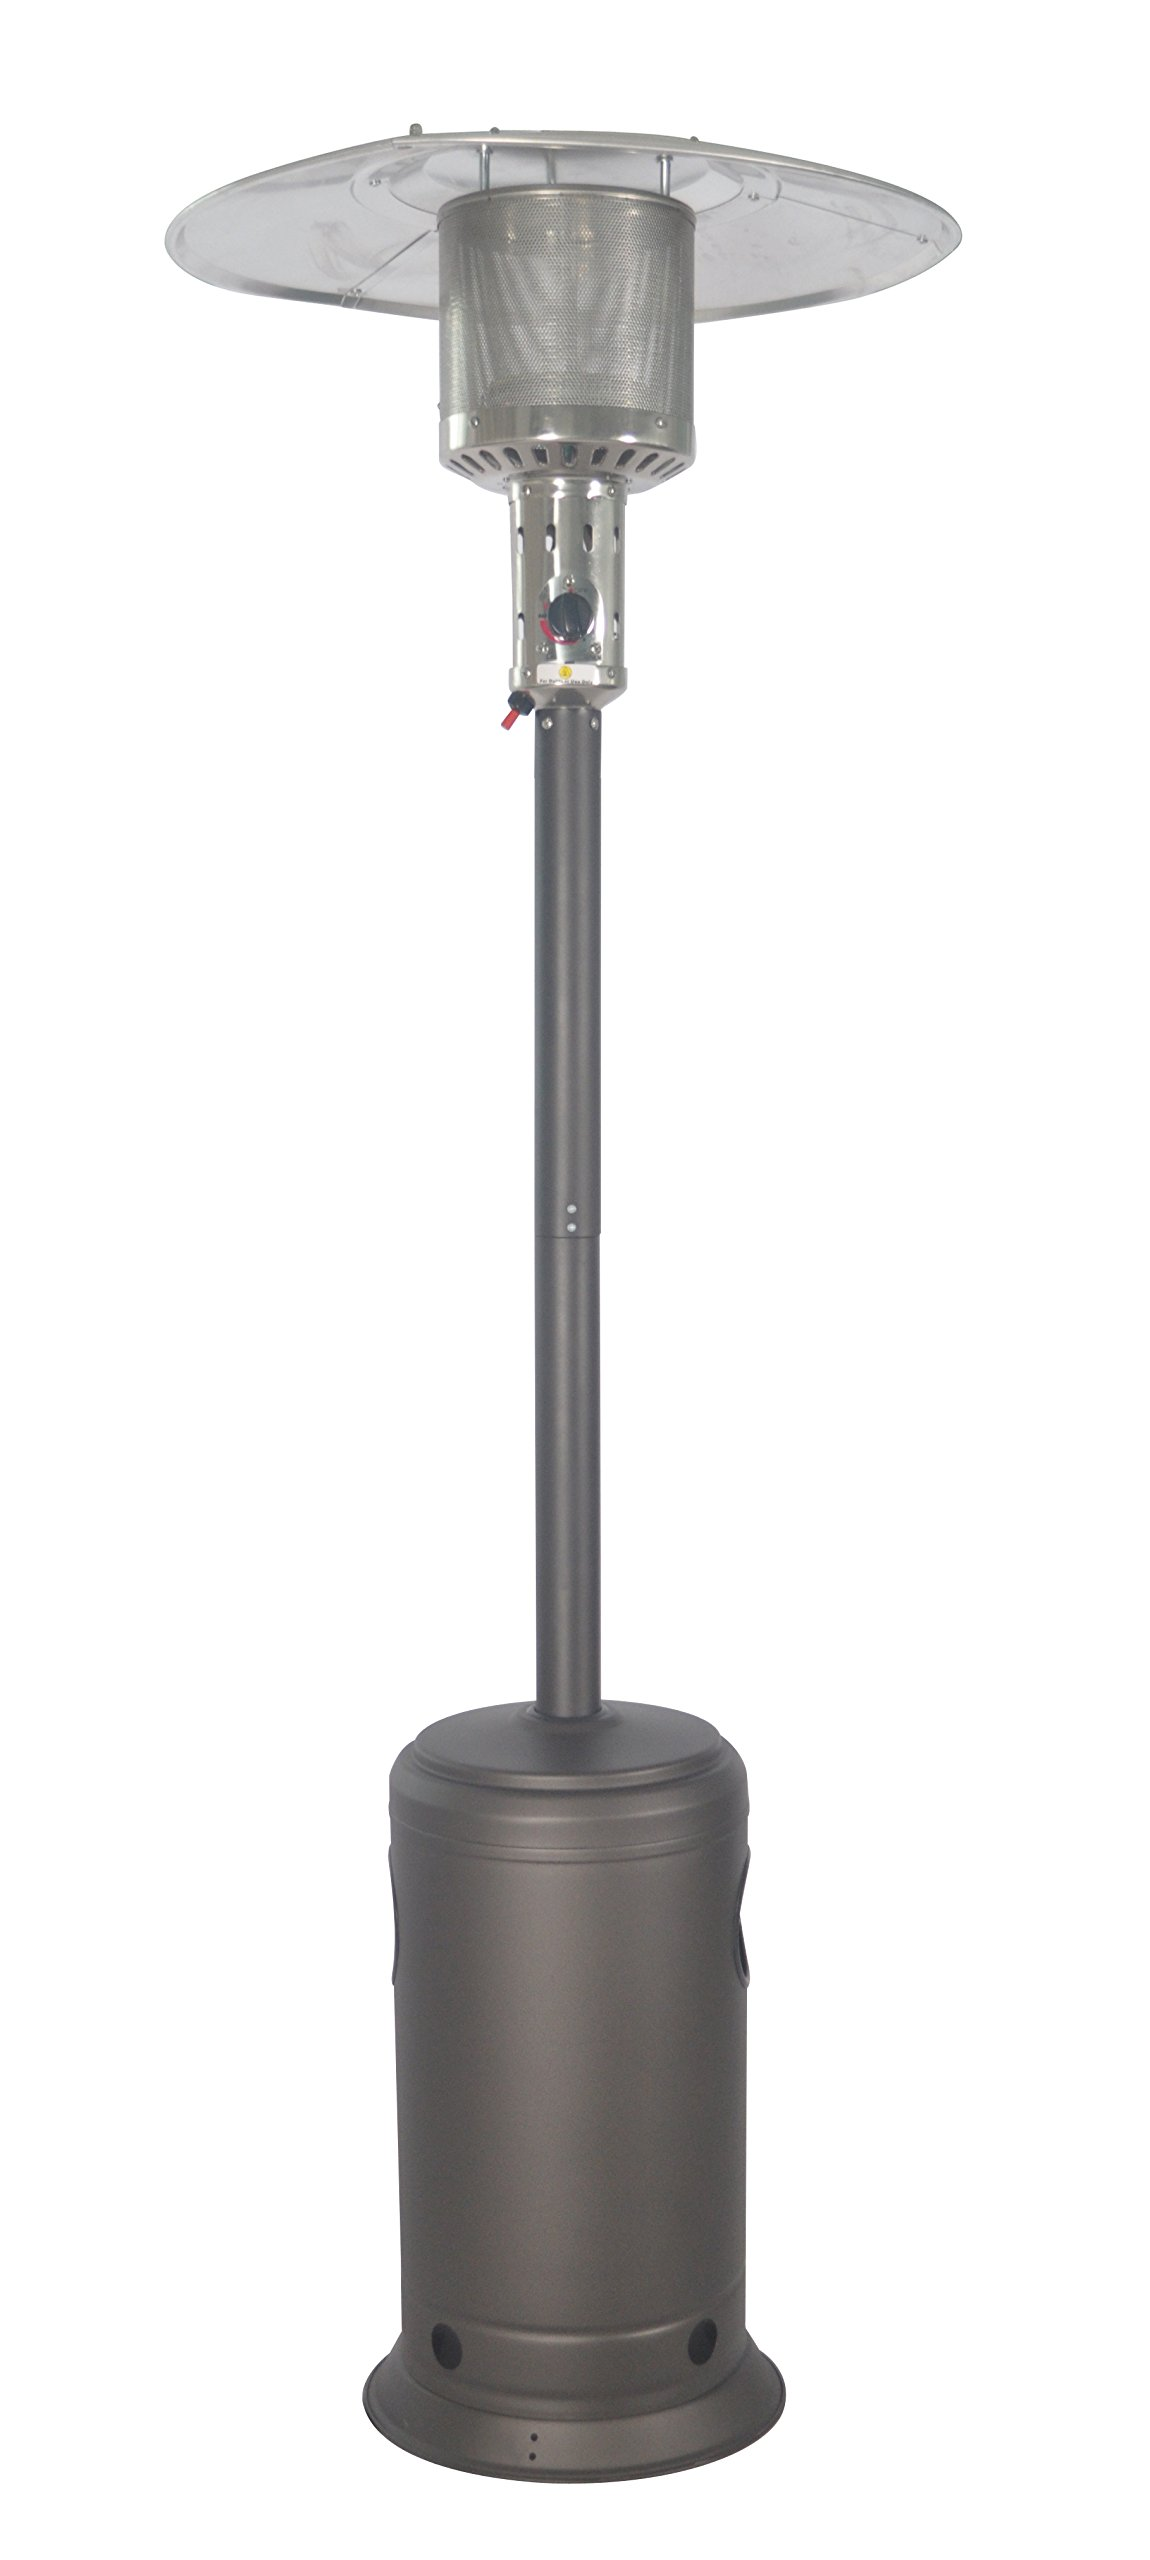 LEGACY HEATING CAPH-7-S CAPH-7Smocha Patio Heater, Hammered Black